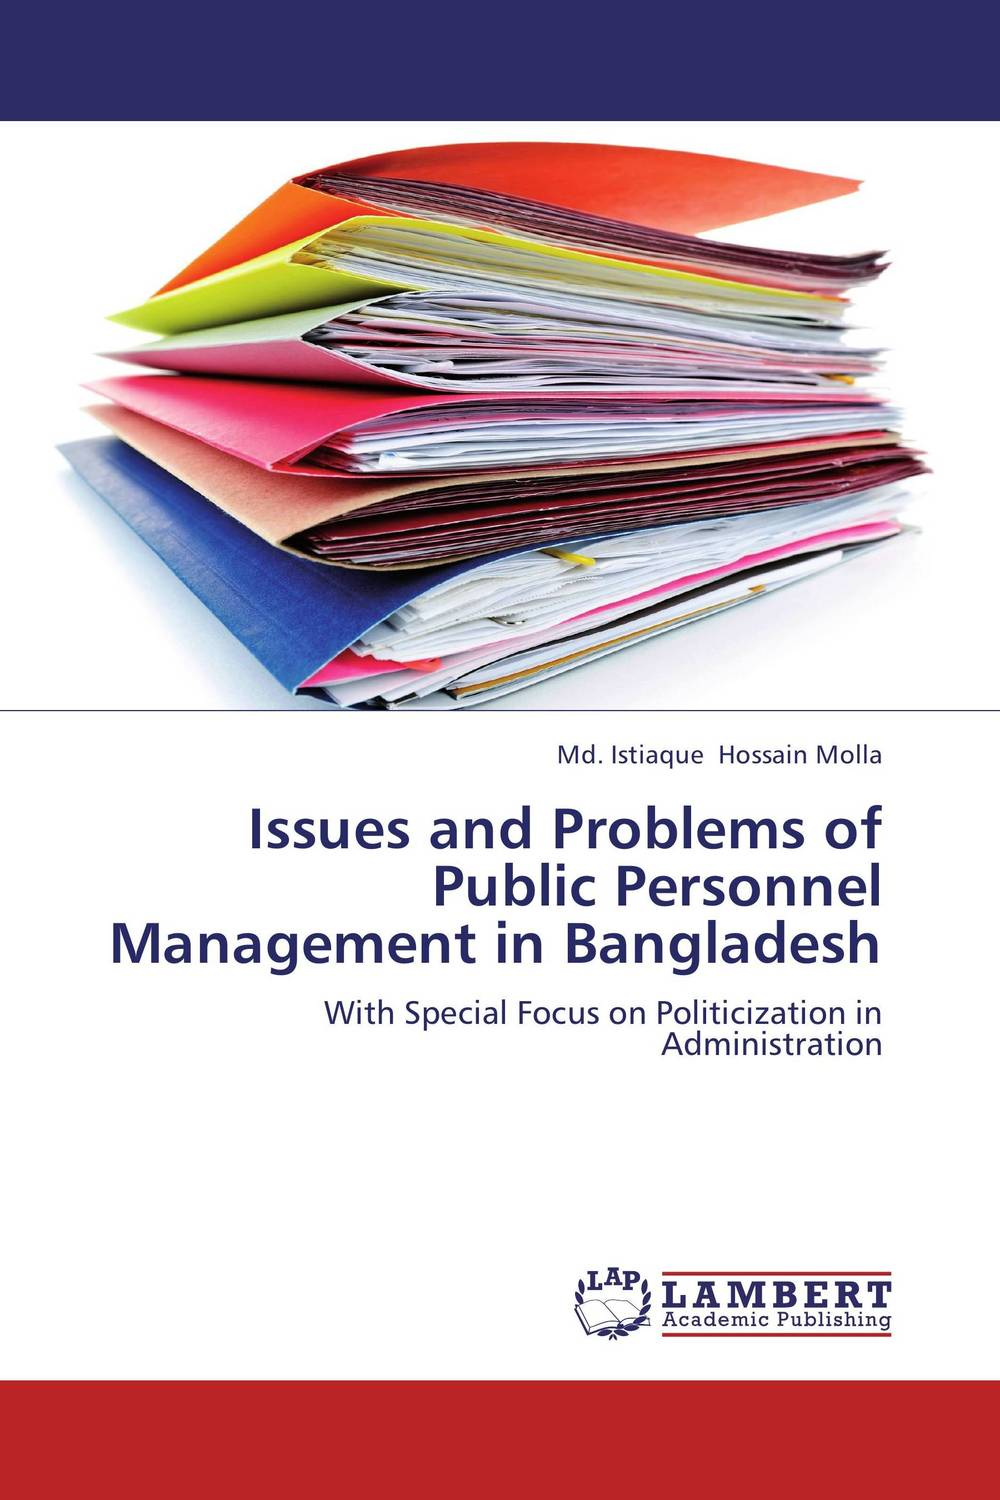 Issues and Problems of Public Personnel Management in Bangladesh voluntary associations in tsarist russia – science patriotism and civil society